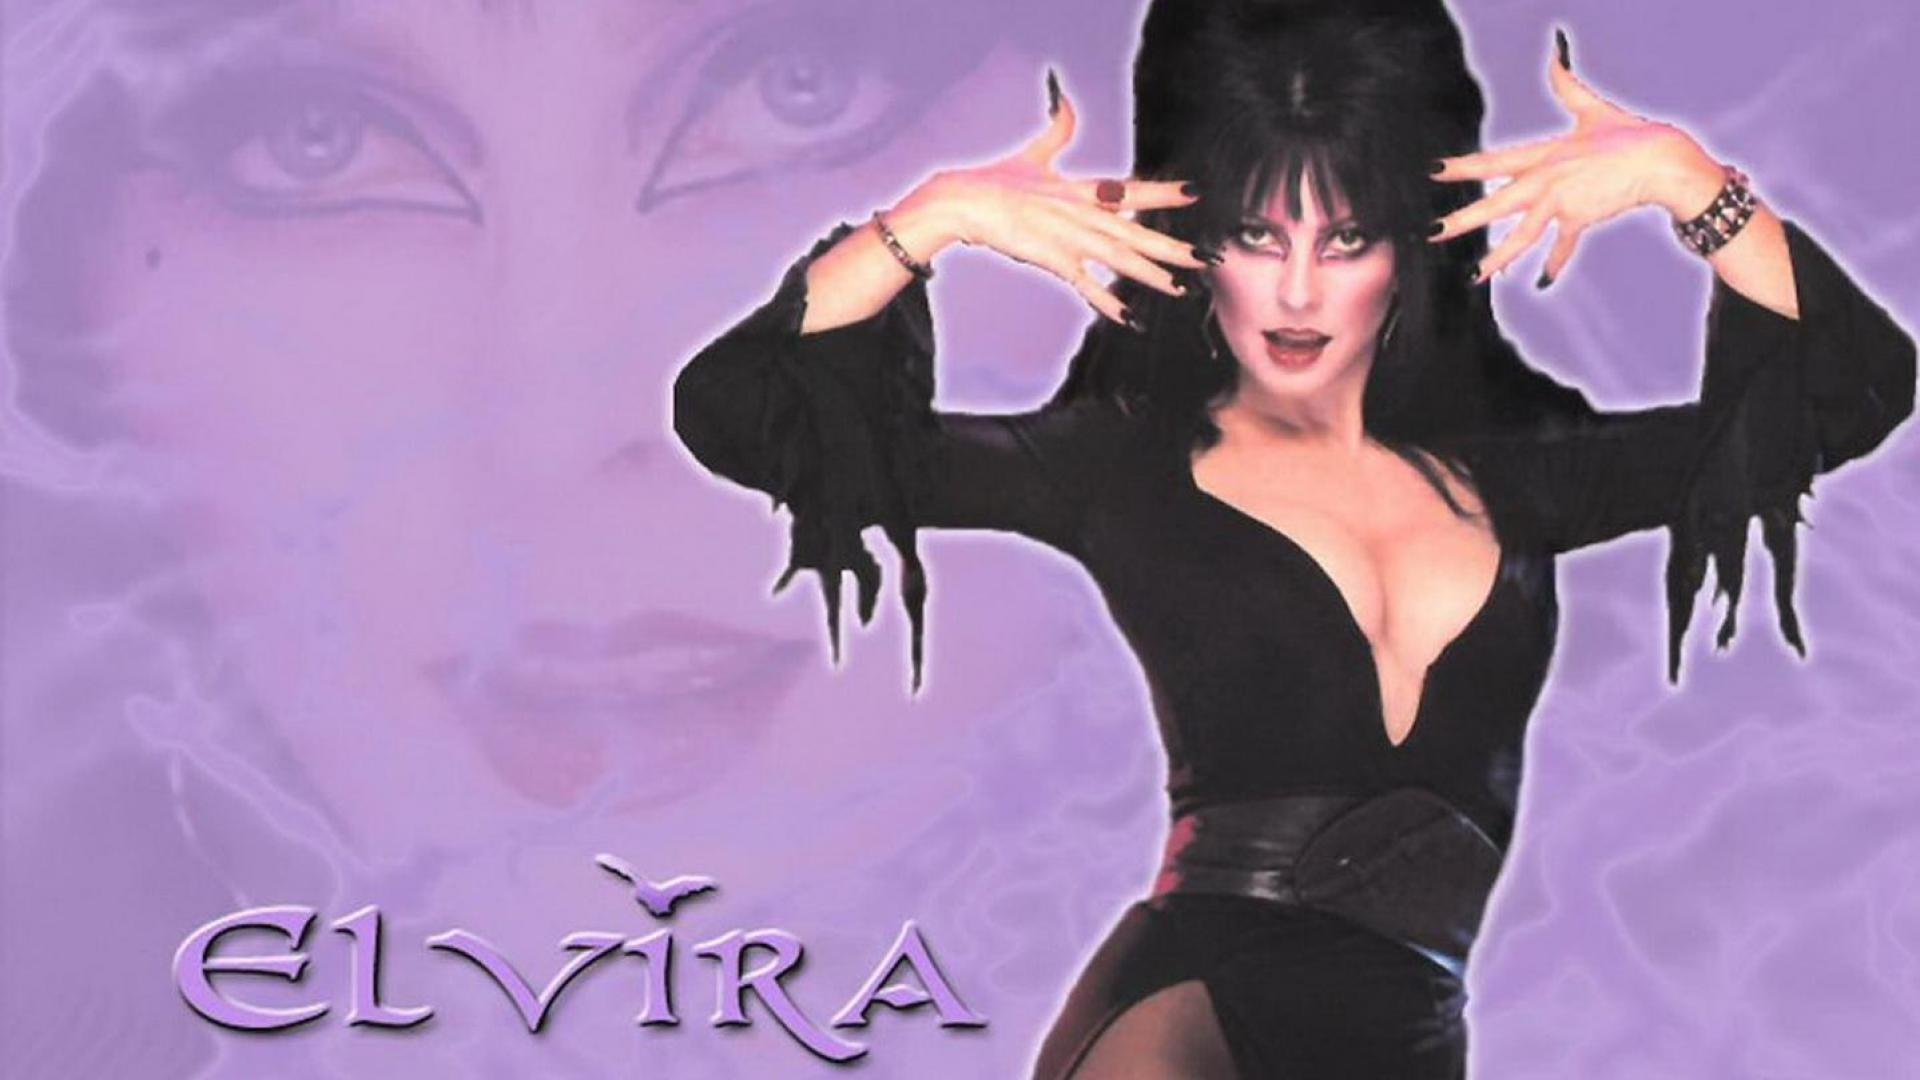 Elvira Mistress Of The Dark Wallpaper 1920x1080